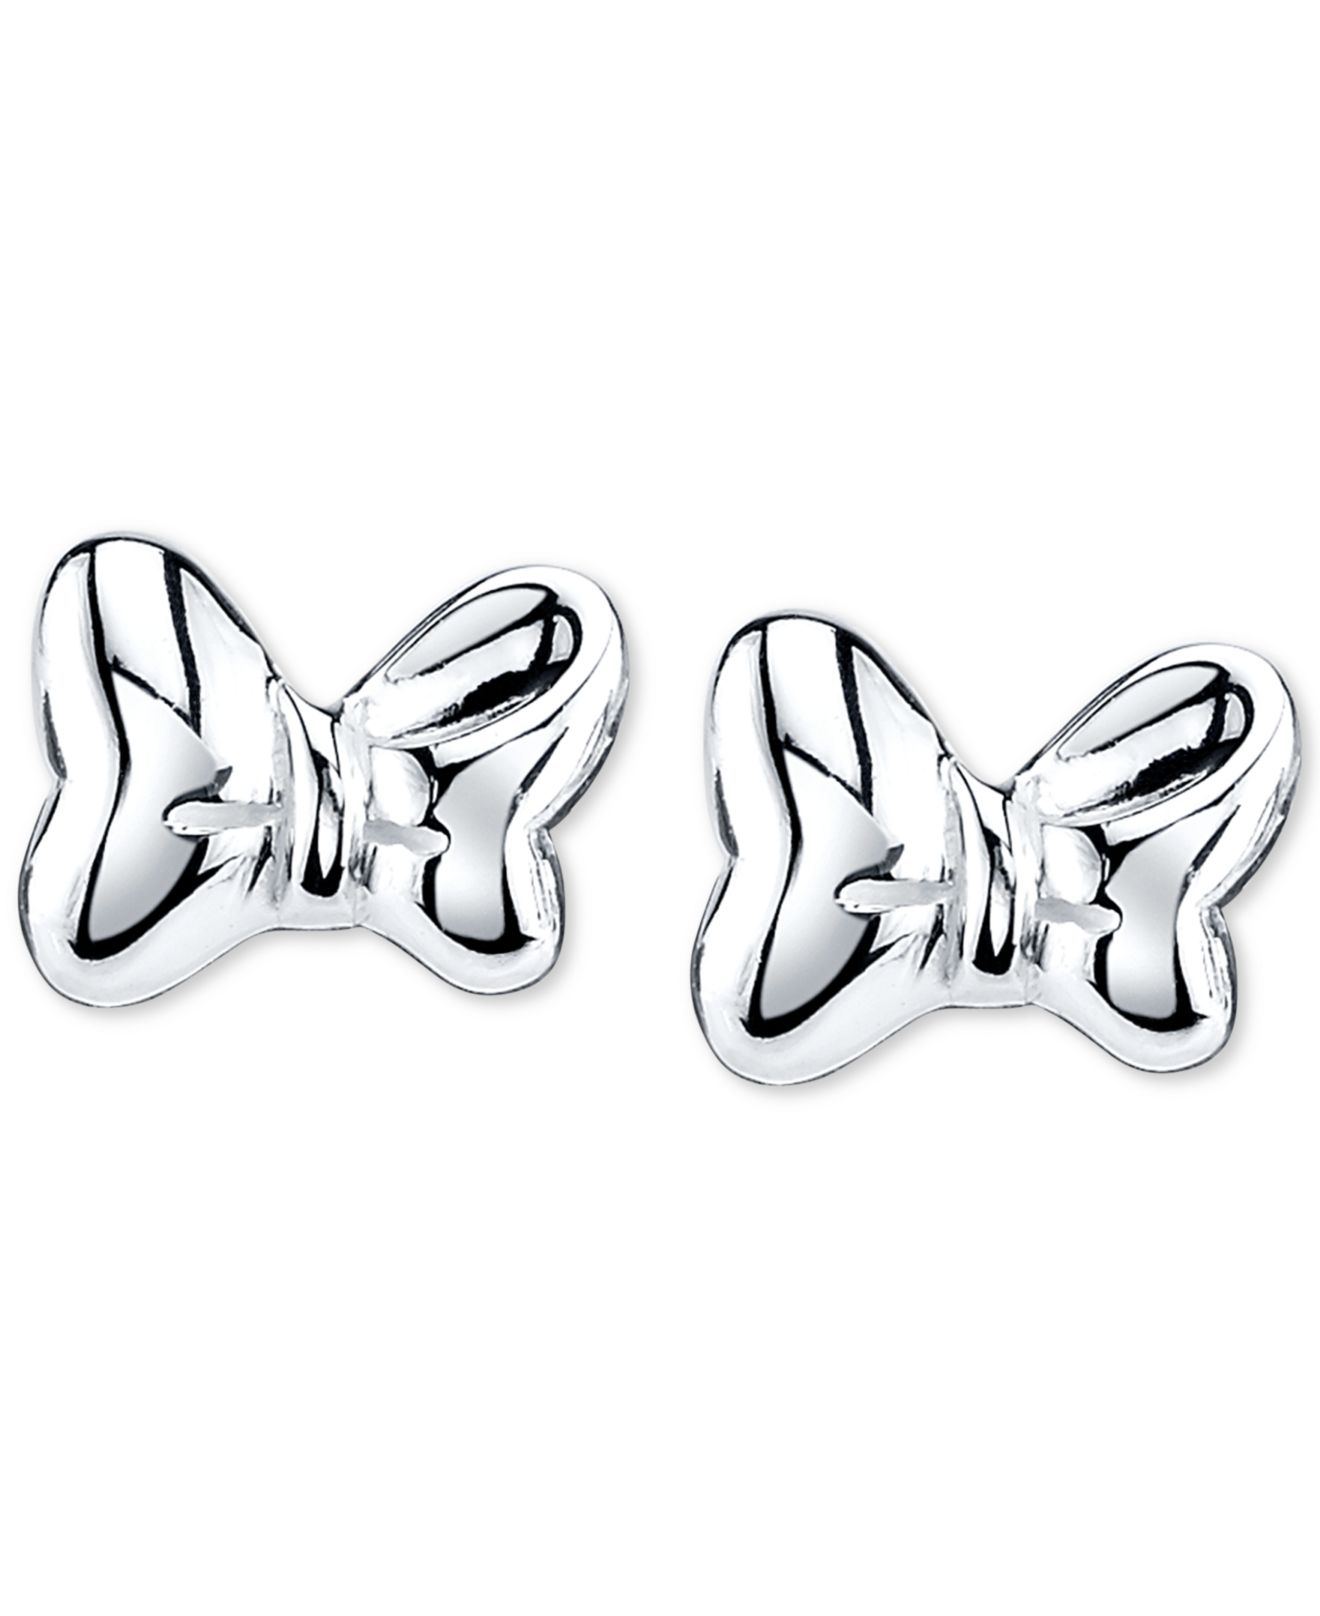 cf0edef1a Disney Minnie Mouse Bow Stud Earrings In Sterling Silver in Gray - Lyst